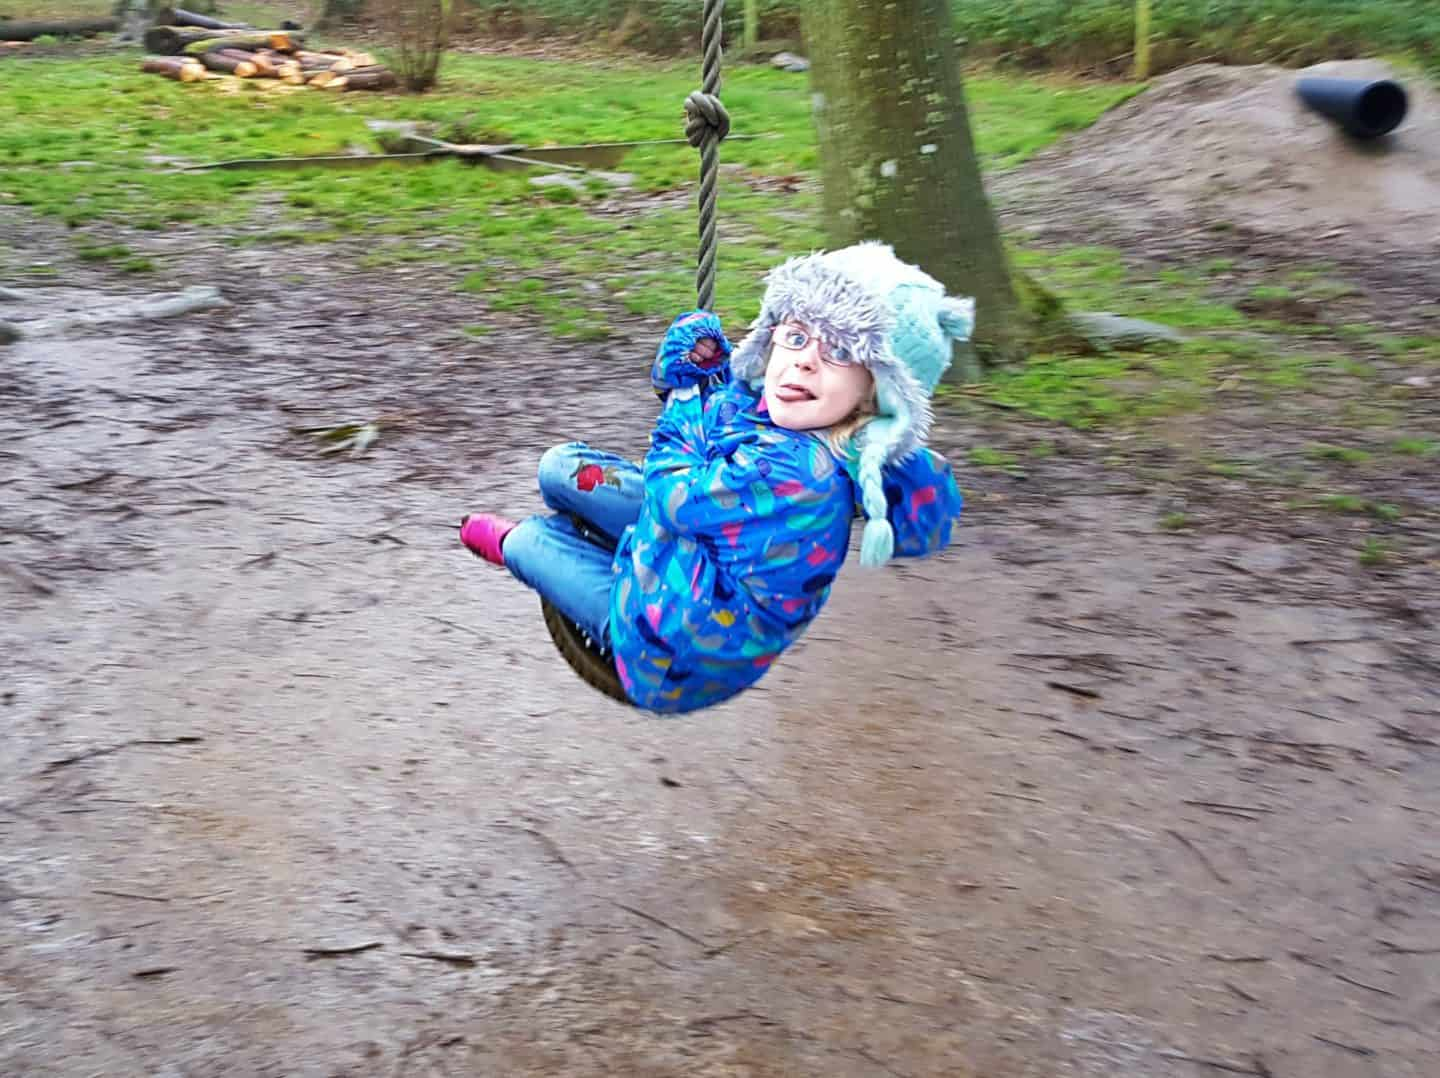 National Trust membership little girl in a blue coat on a rope swing